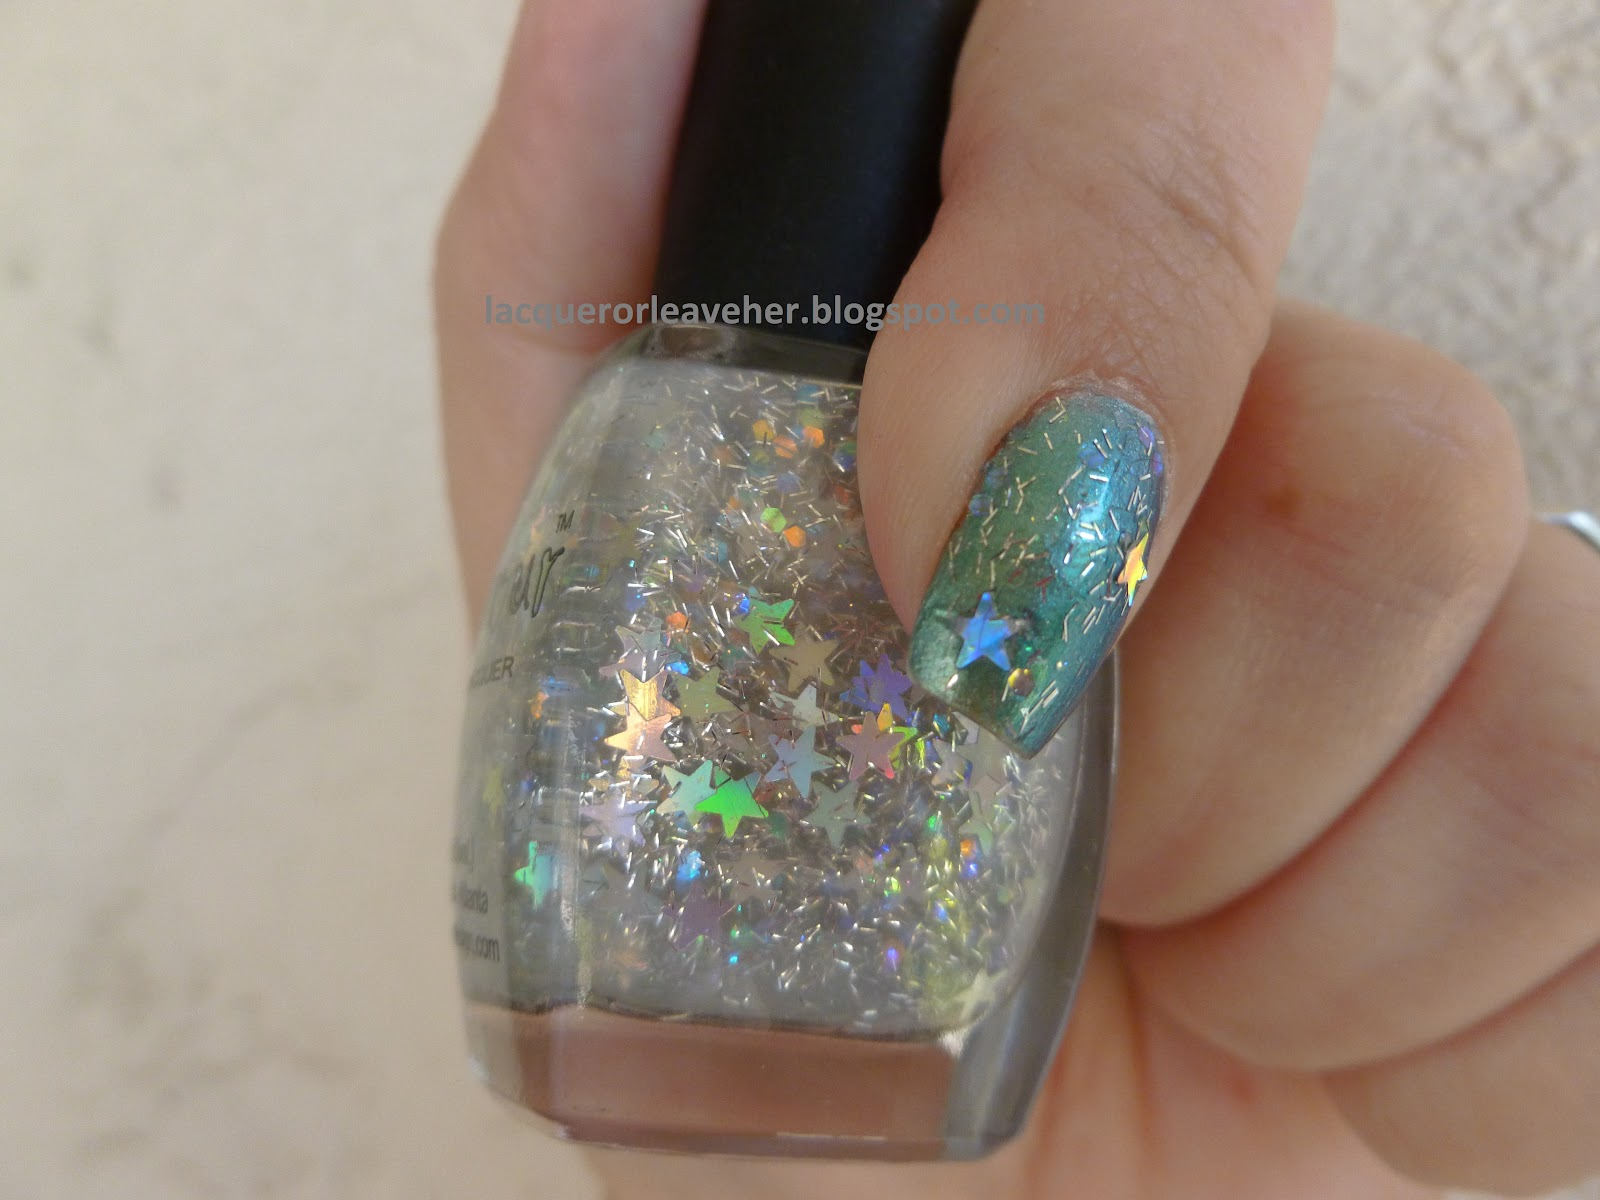 Starlet Night Is Also In A Clear Base And Contains Mini Holographic Bar Glitter Stars I Adore This Tiny Wish More Polishes